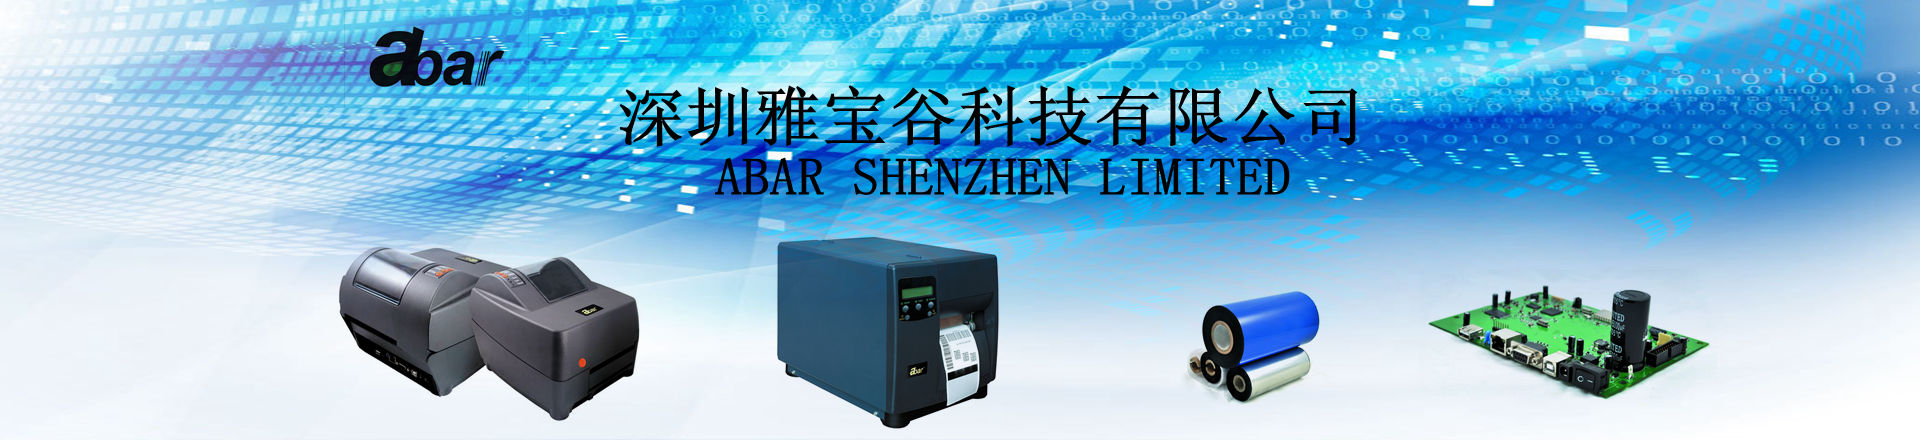 Shenzhen yabao valley technology co. LTD.